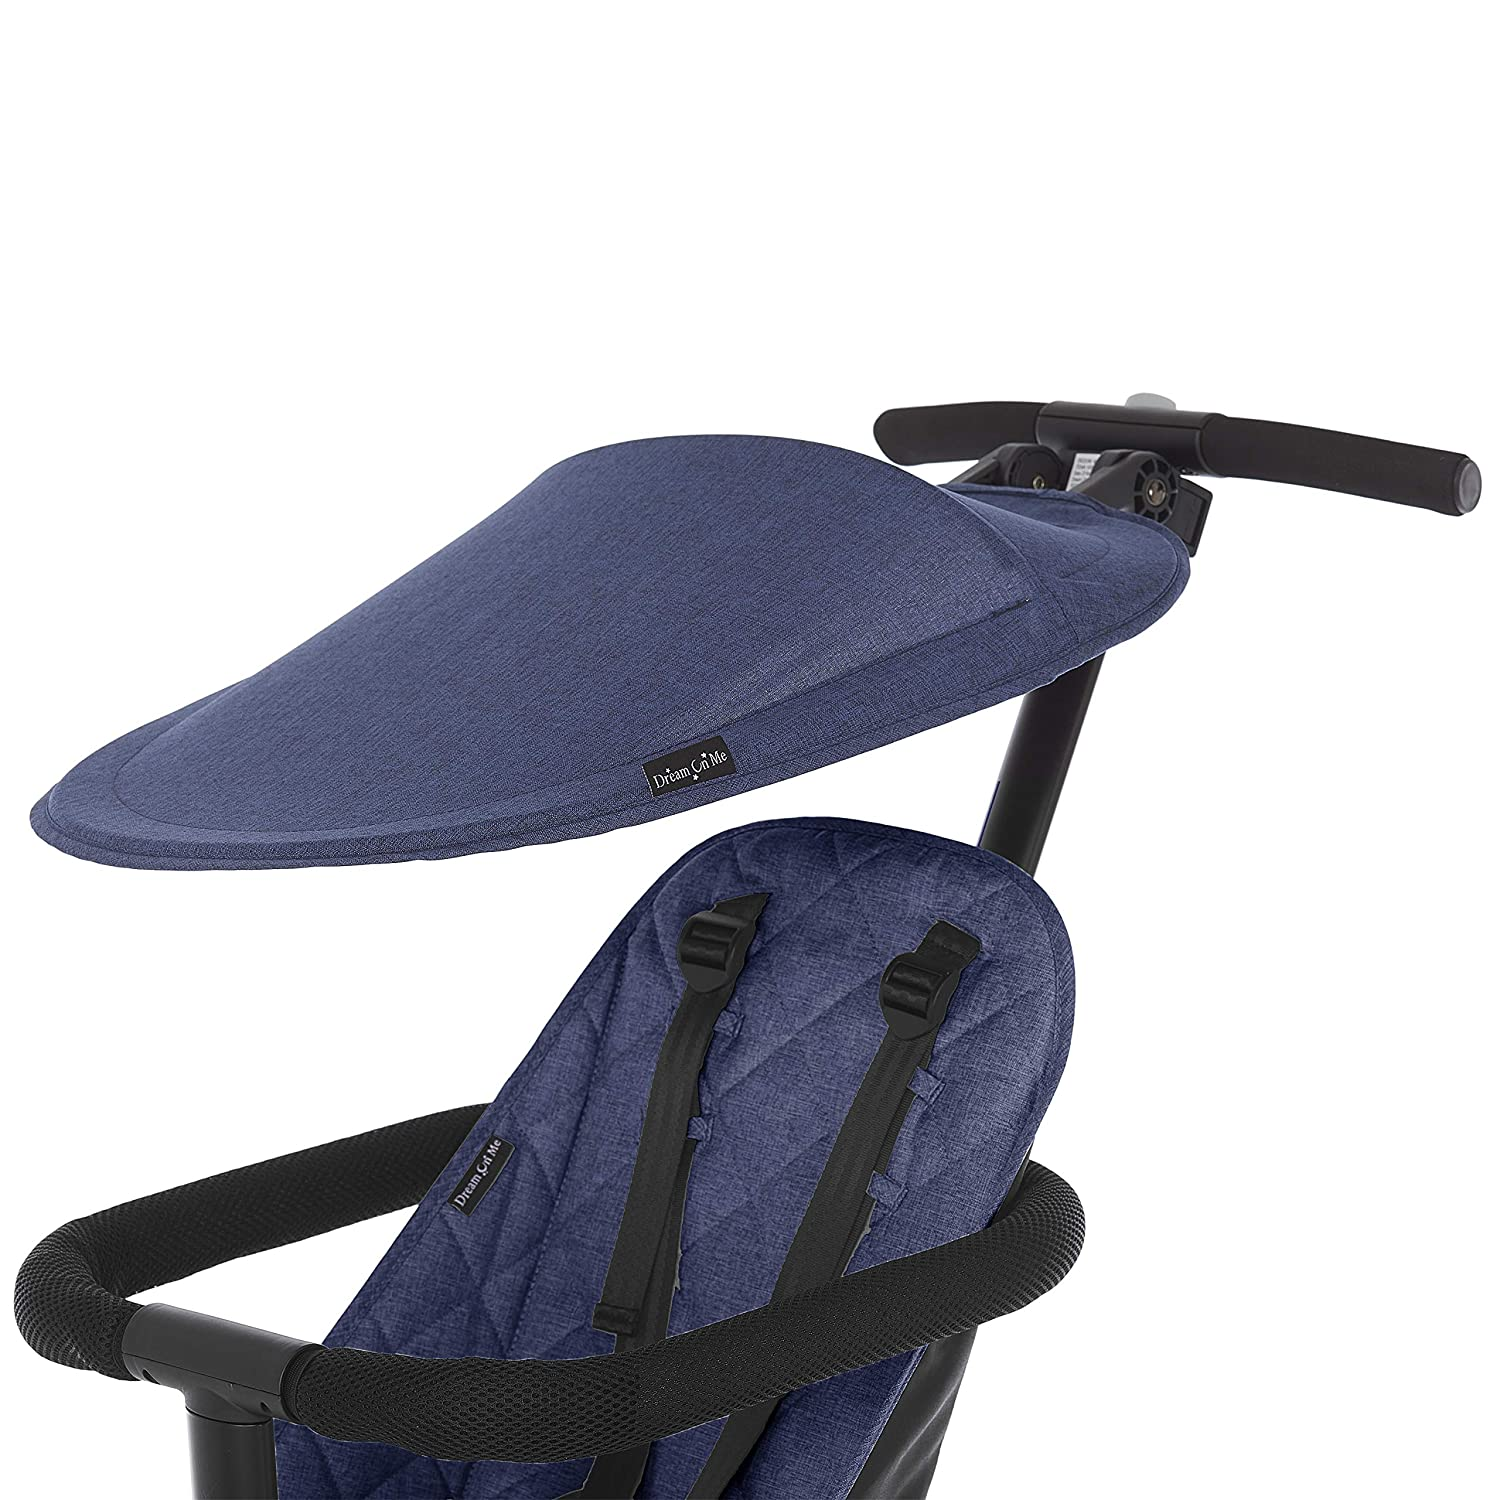 Dream On Me Coast Rider Travel Stroller Lightweight Stroller Compact Portable and Vacation Friendly Stroller, Navy